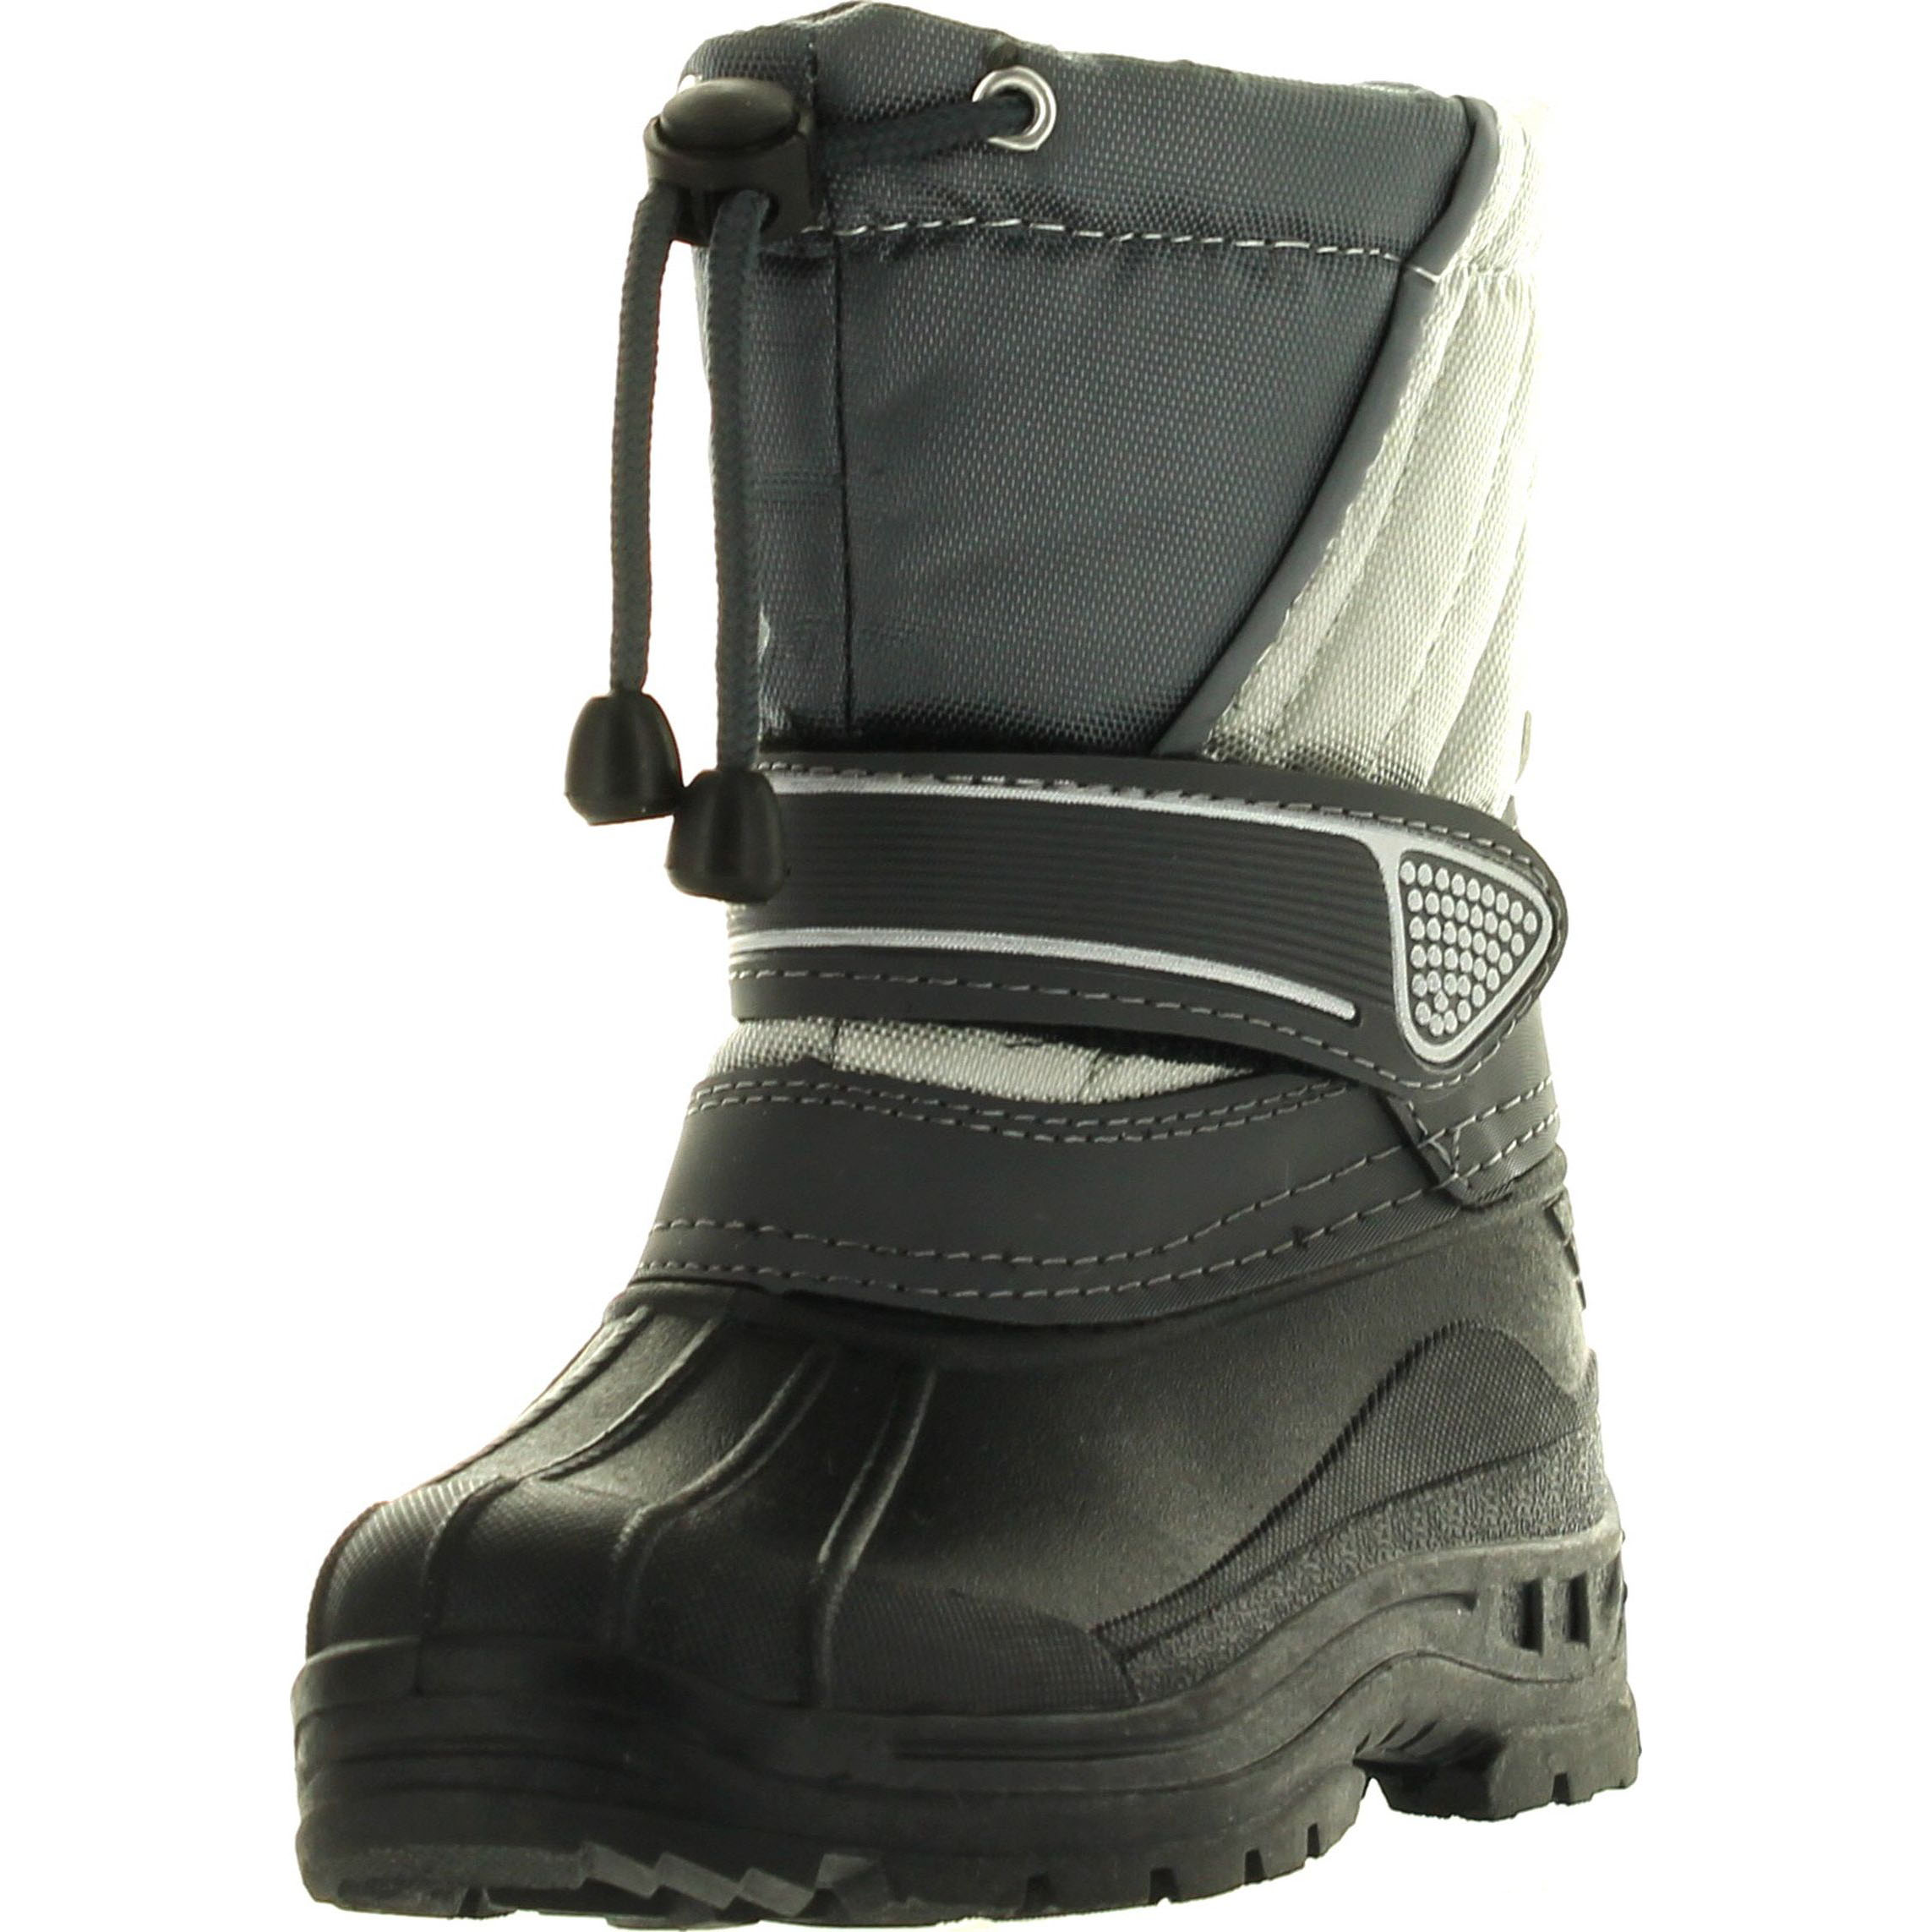 Static Kids BHD-07 Waterproof Cold Weather Kids Snow Boots with Adjustable Feature by Static Footwear